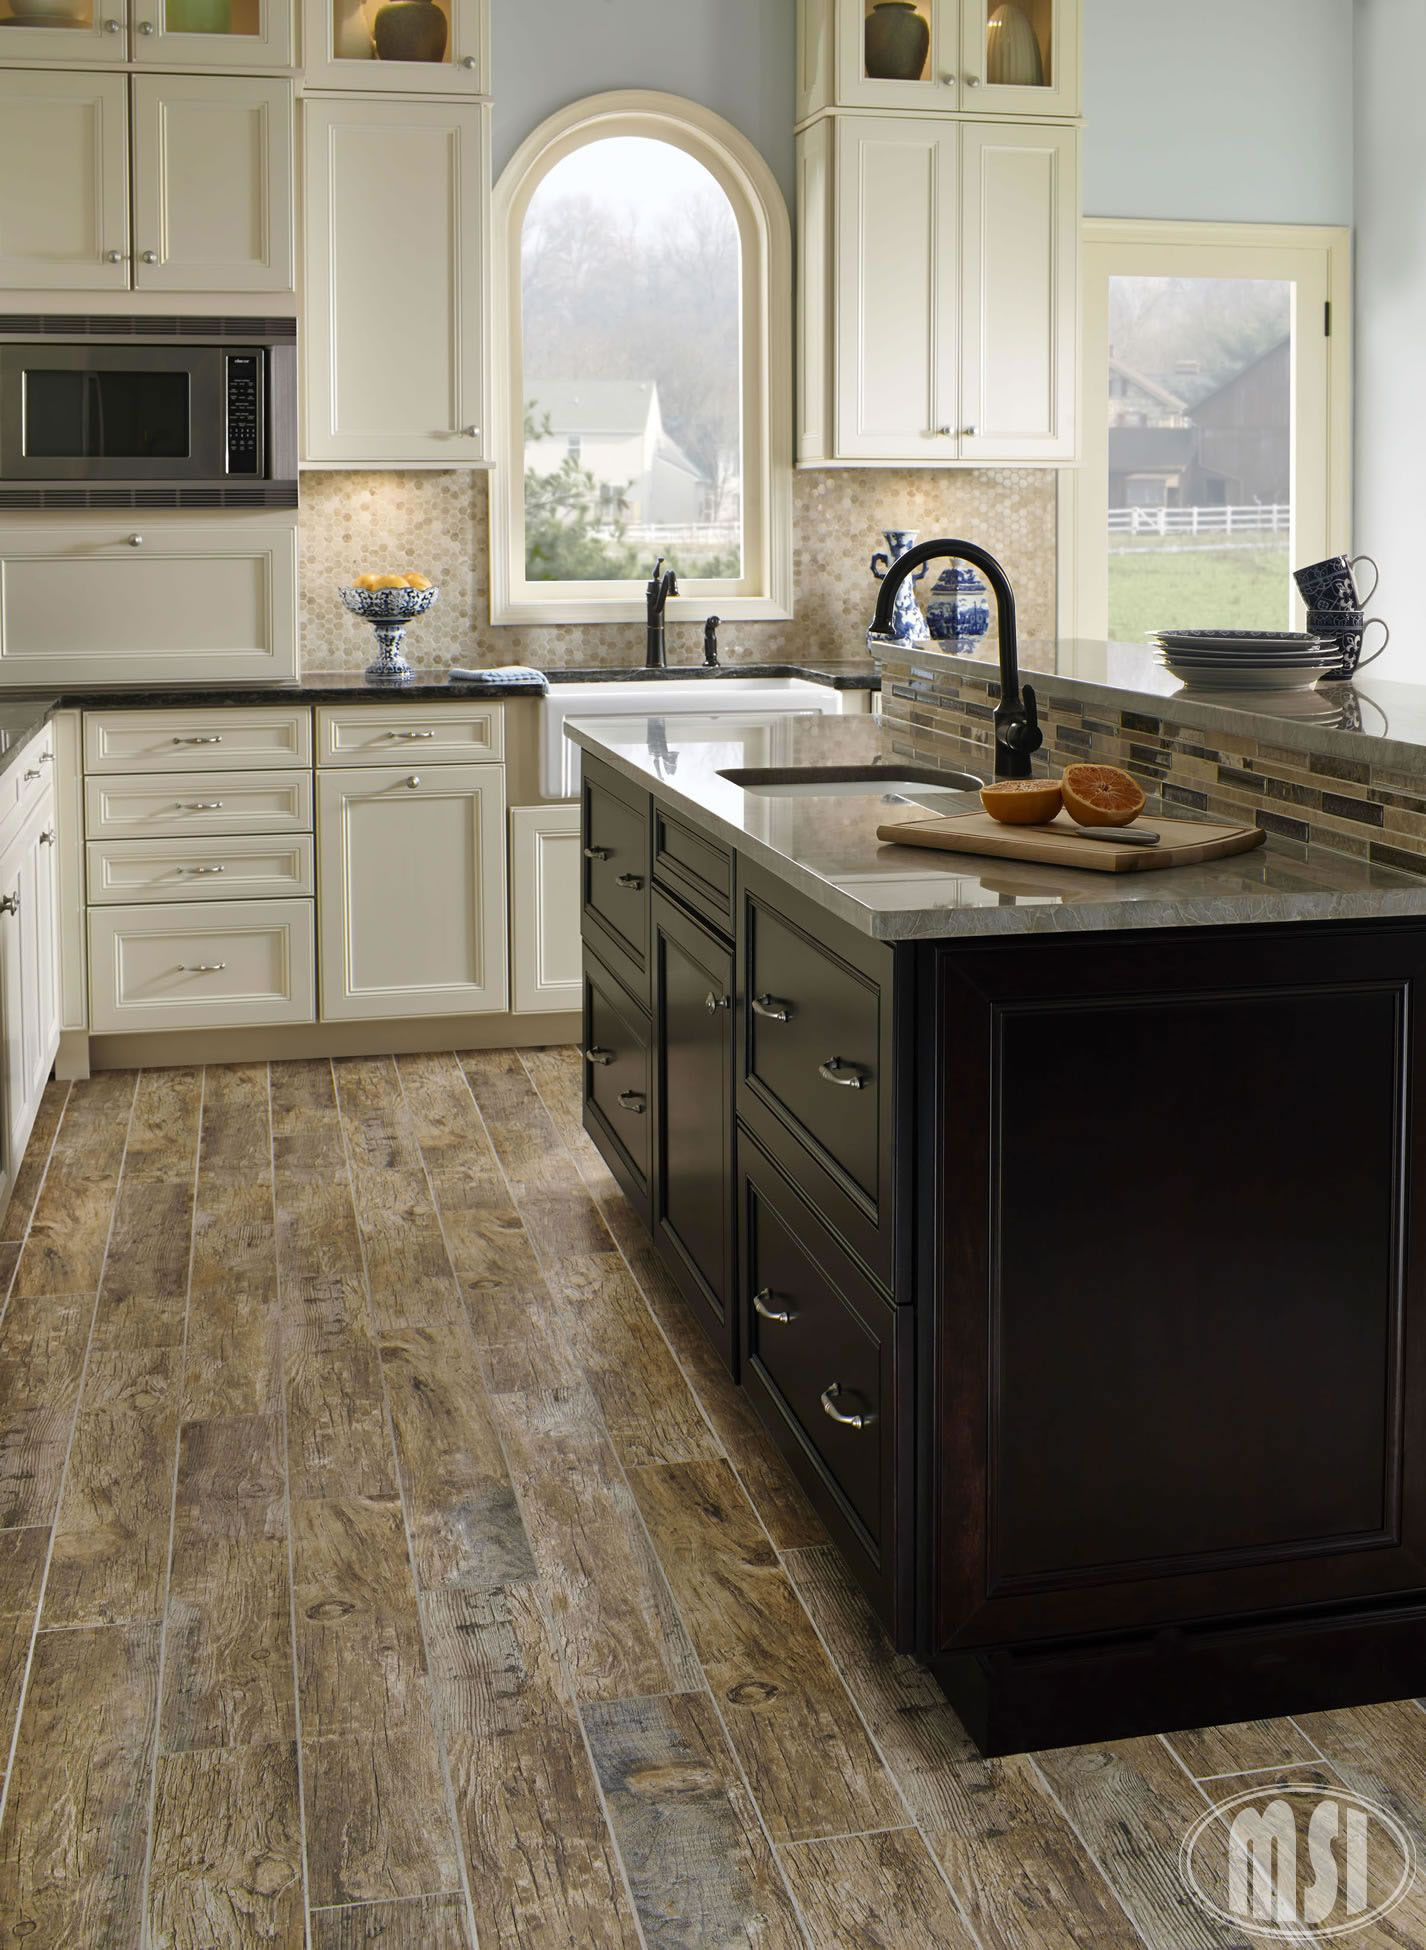 Tile In Kitchen Floor Perfect Kitchen Floor No Need To Worry About Real Wood Floors